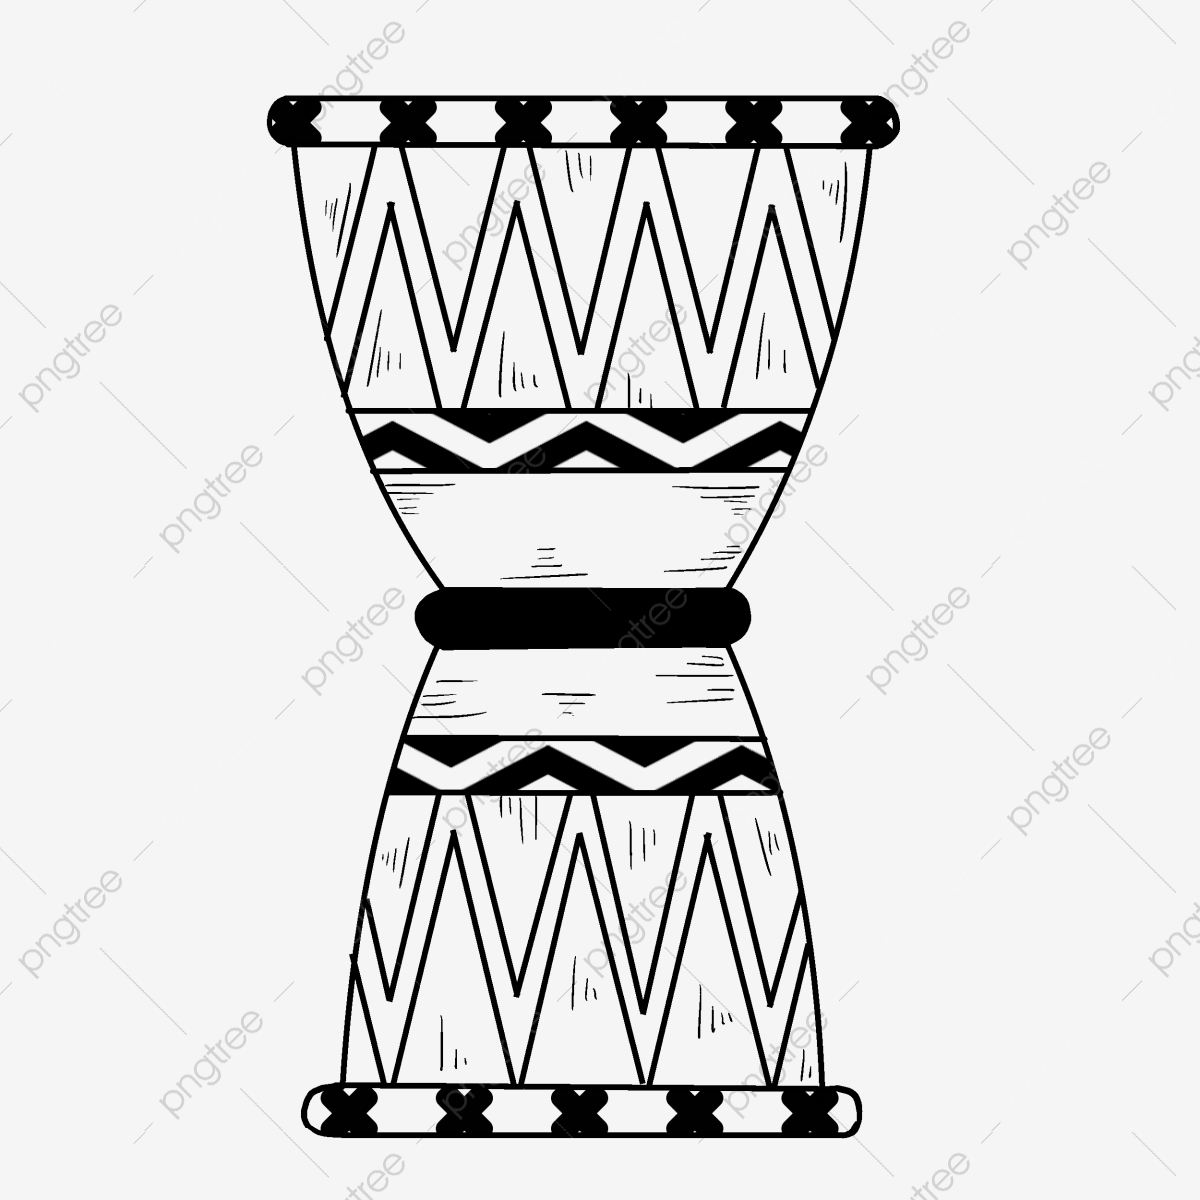 Drums clipart rhythm instrument. Line drawing traditional